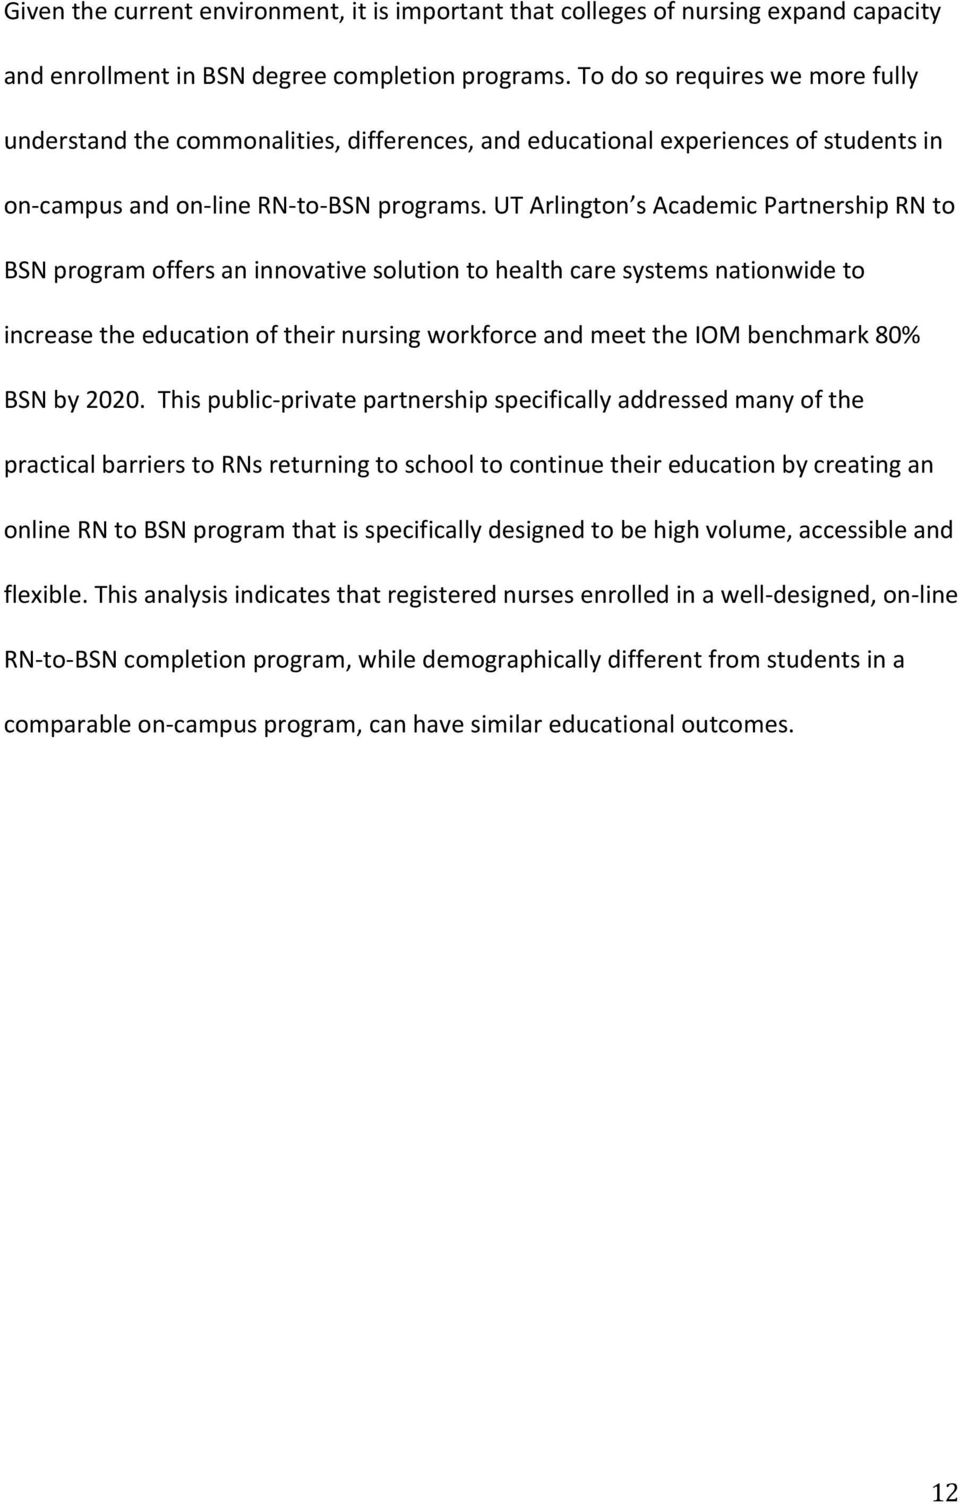 UT Arlington s Academic Partnership RN to BSN program offers an innovative solution to health care systems nationwide to increase the education of their nursing workforce and meet the IOM benchmark